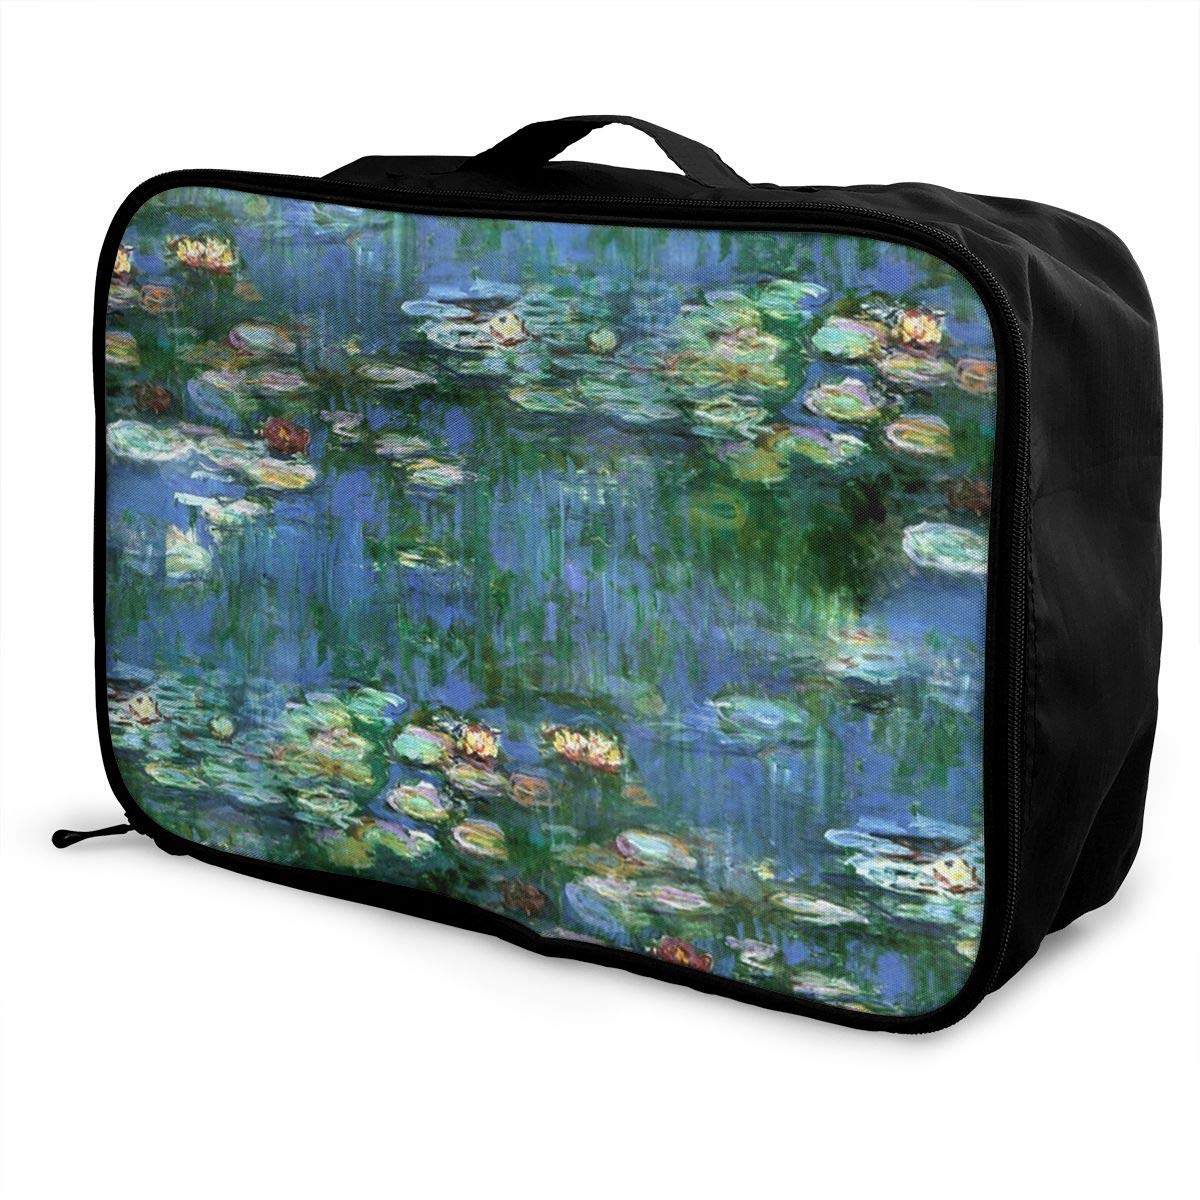 Portable Luggage Duffel Bag Lilies Claude Monet Water Lilies Travel Bags Carry-on In Trolley Handle